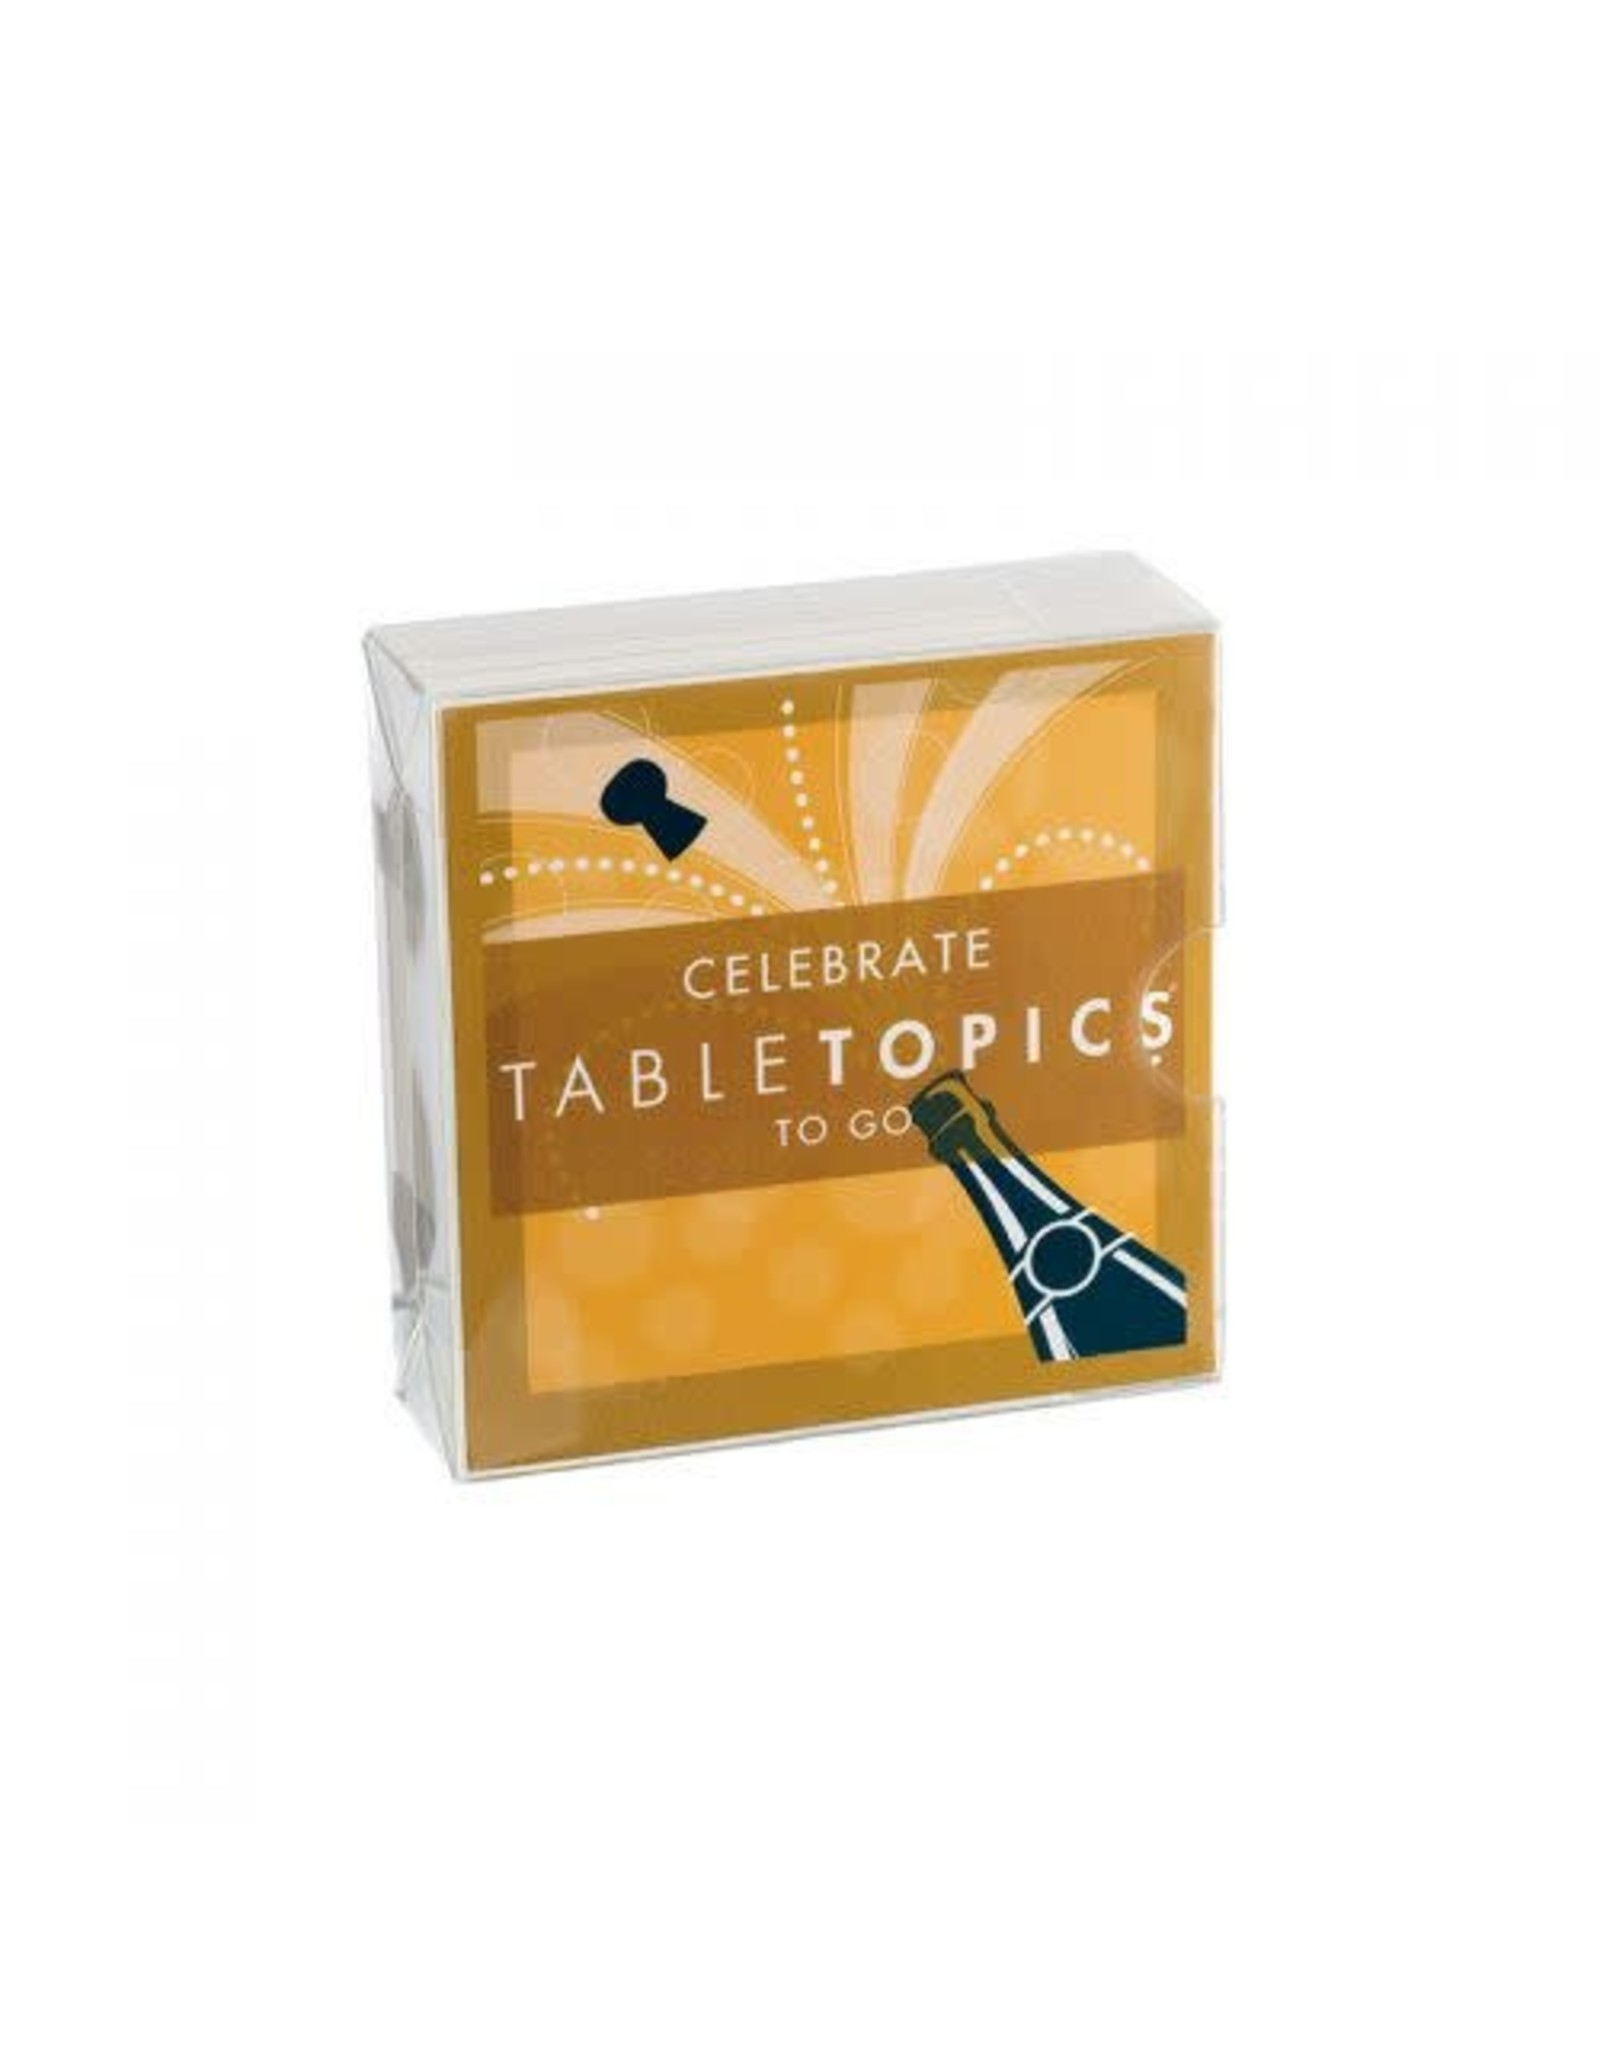 Tabletopics CELEBRATE TO GO TABLE TOPICS